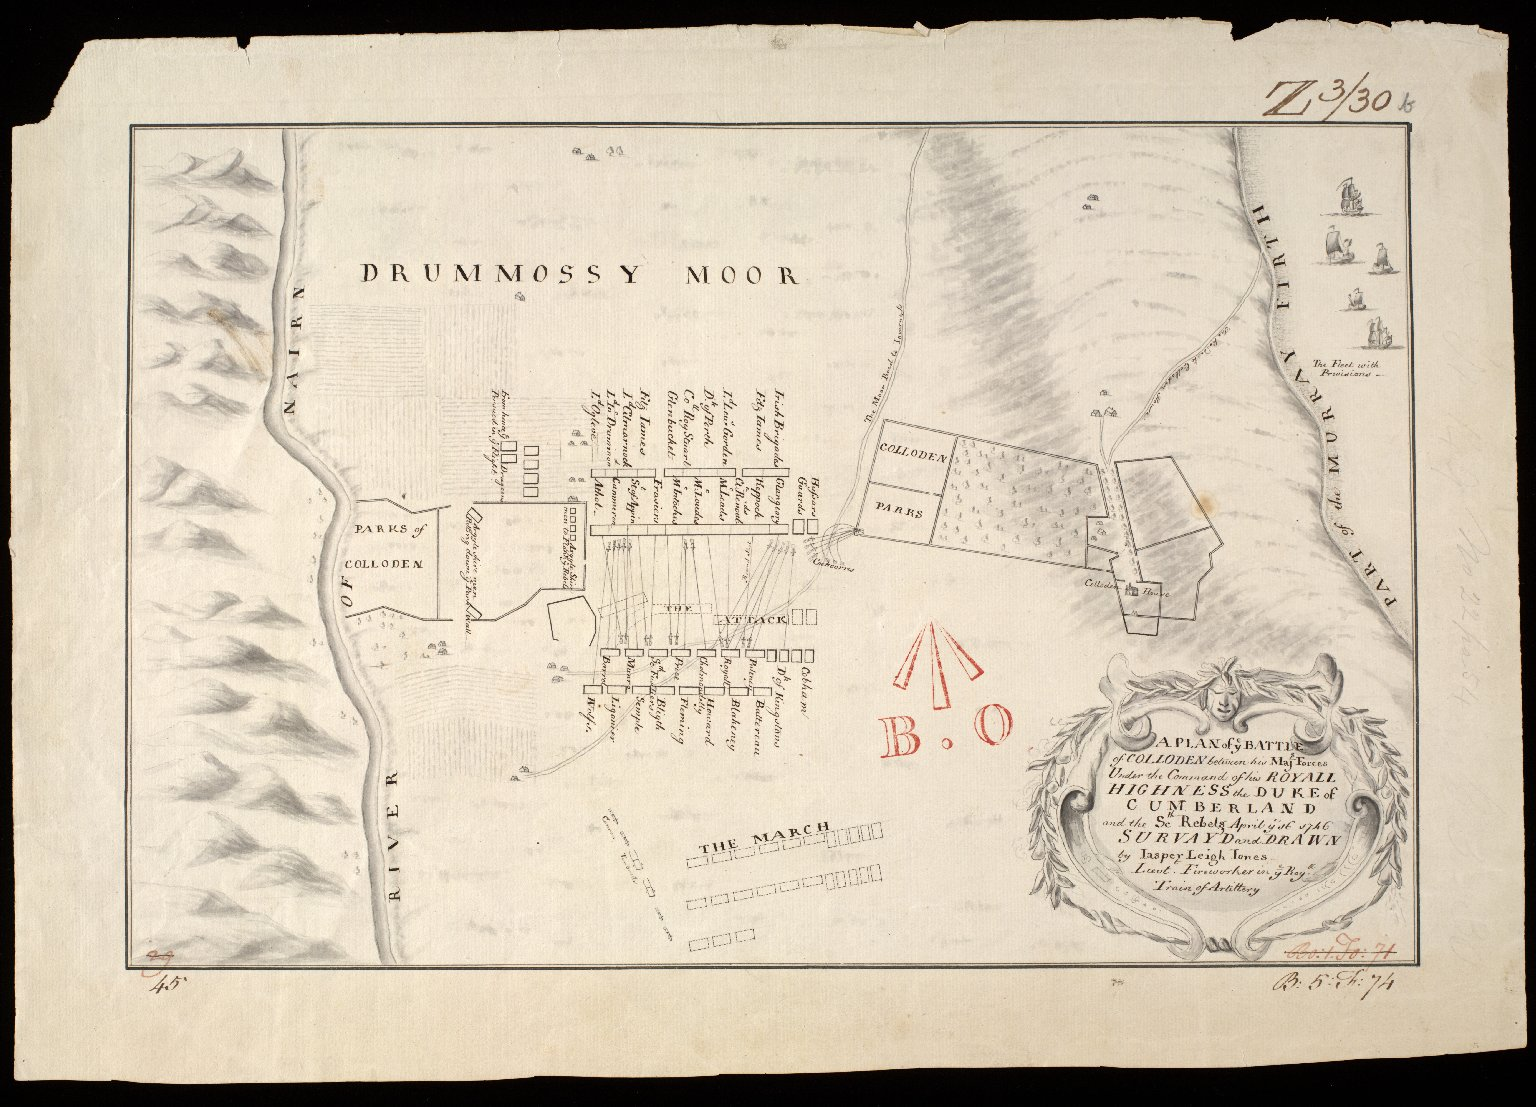 A Plan of ye Battle of Colloden between his Majs. Forces Under the Command of his Royall Highness the Duke of Cumberland and the Sctt. Rebels April ye 16 1746 [1 of 1]